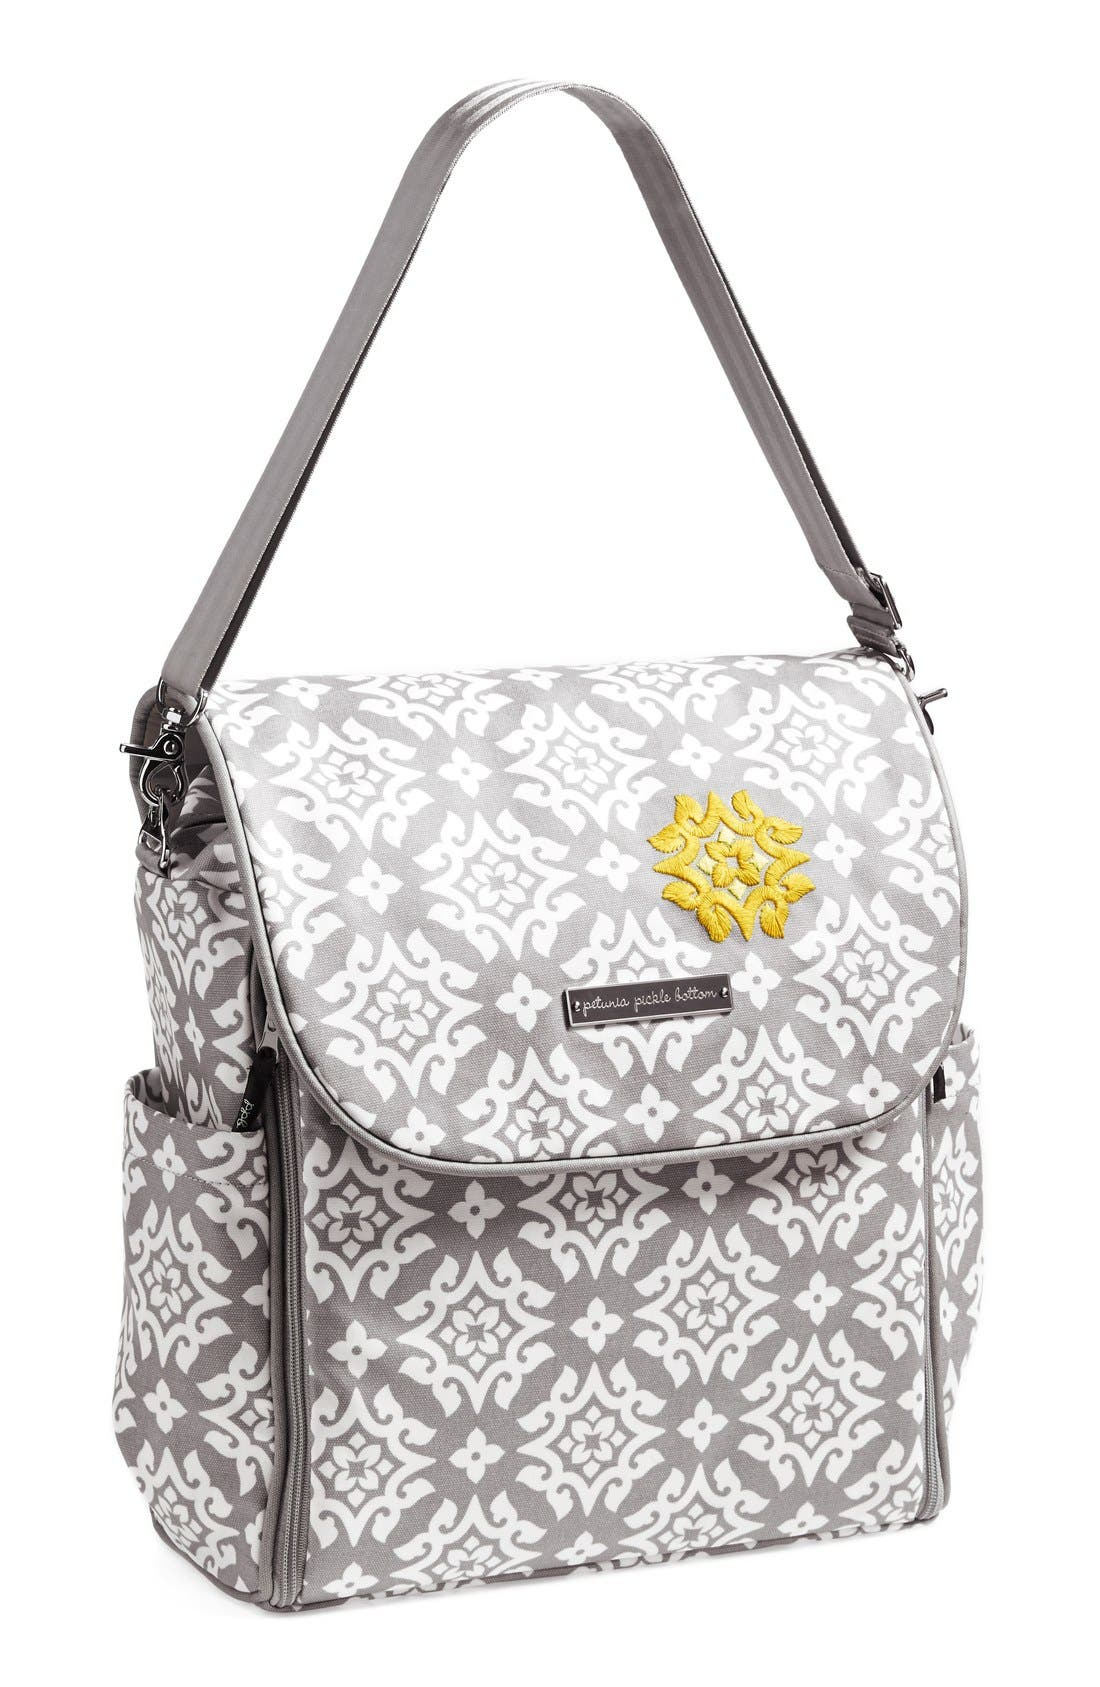 Alternate Image 1 Selected - Petunia Pickle Bottom 'Boxy' Backpack Diaper Bag (Nordstrom Exclusive)